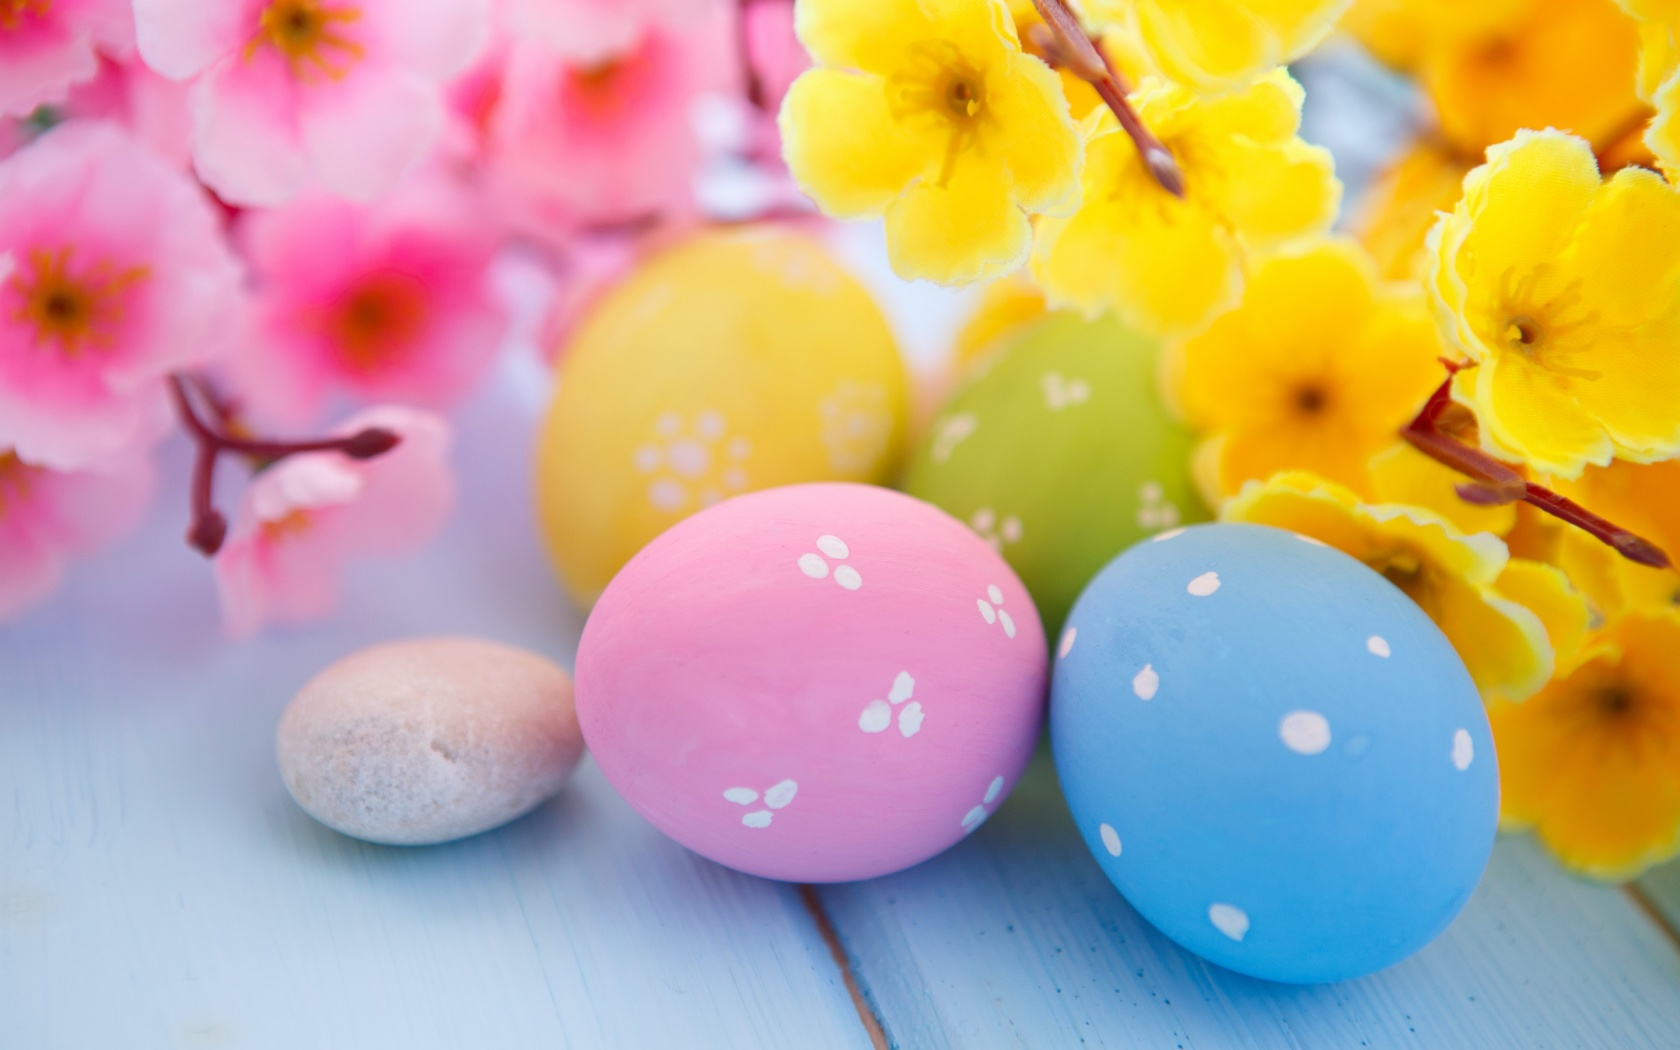 Spring Easter 2016 Wallpapers